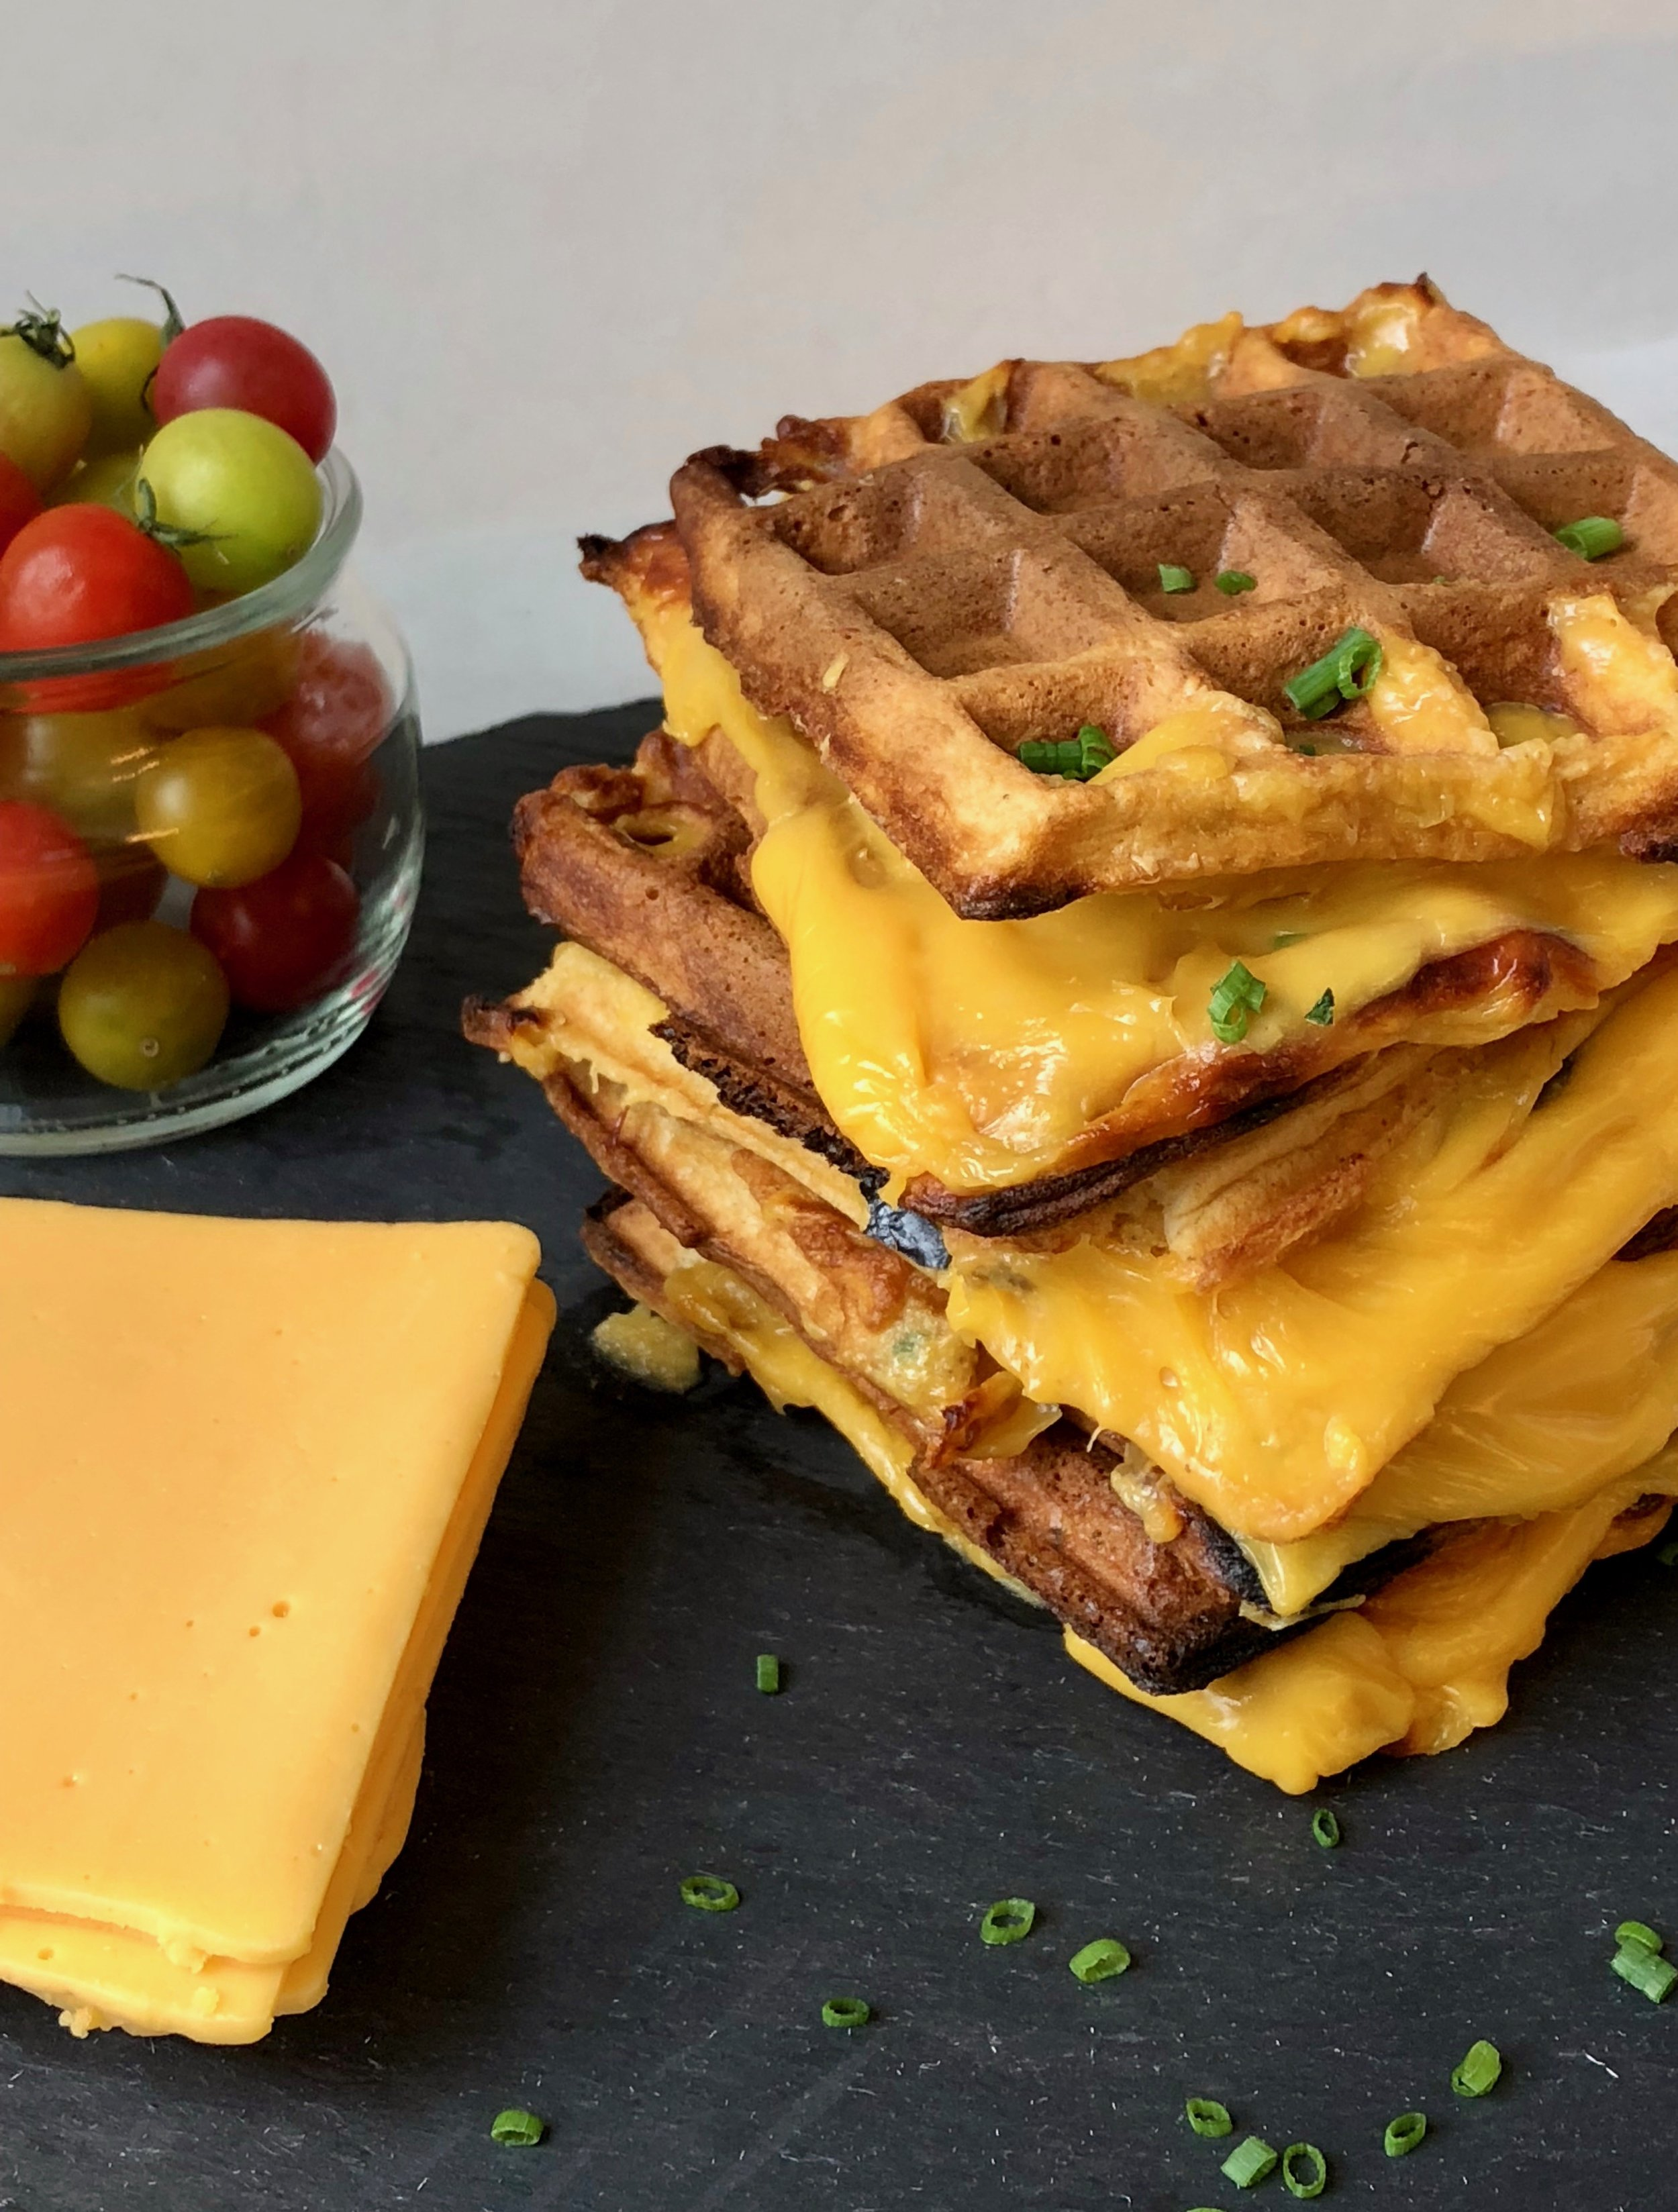 Grilled cheese wafflewich